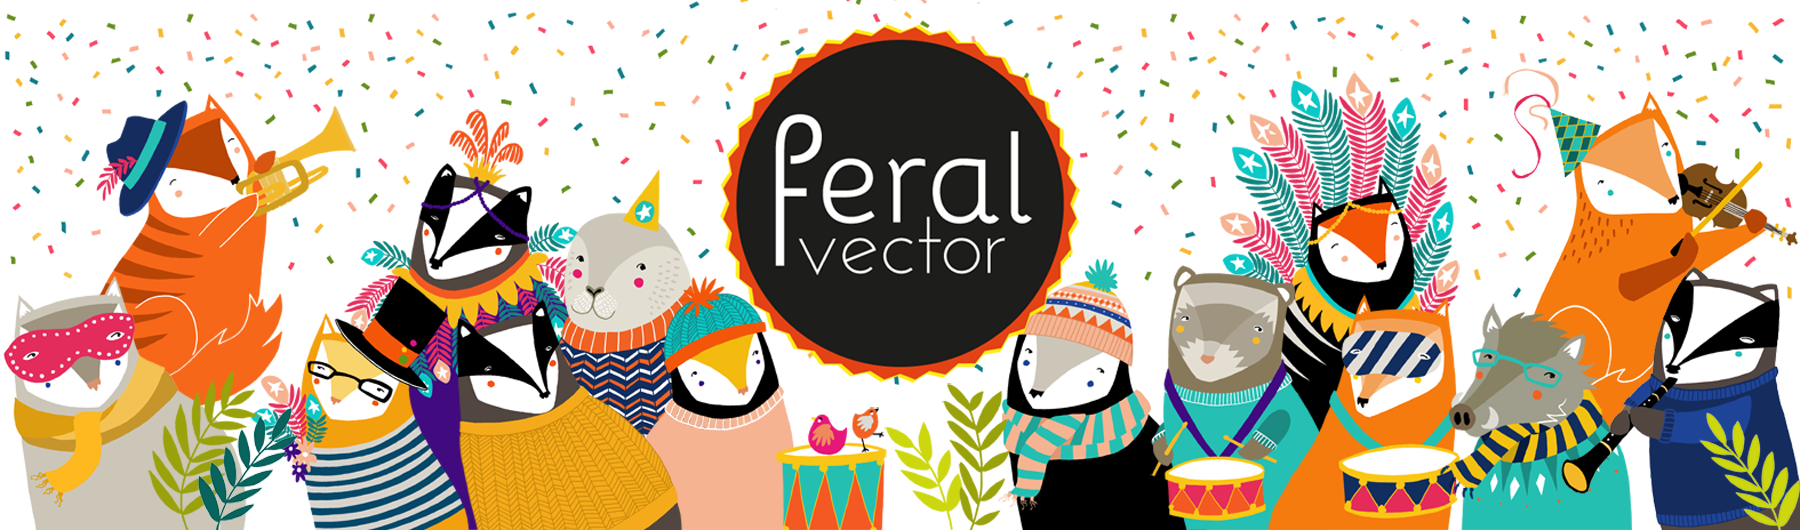 Feral Vector 2017